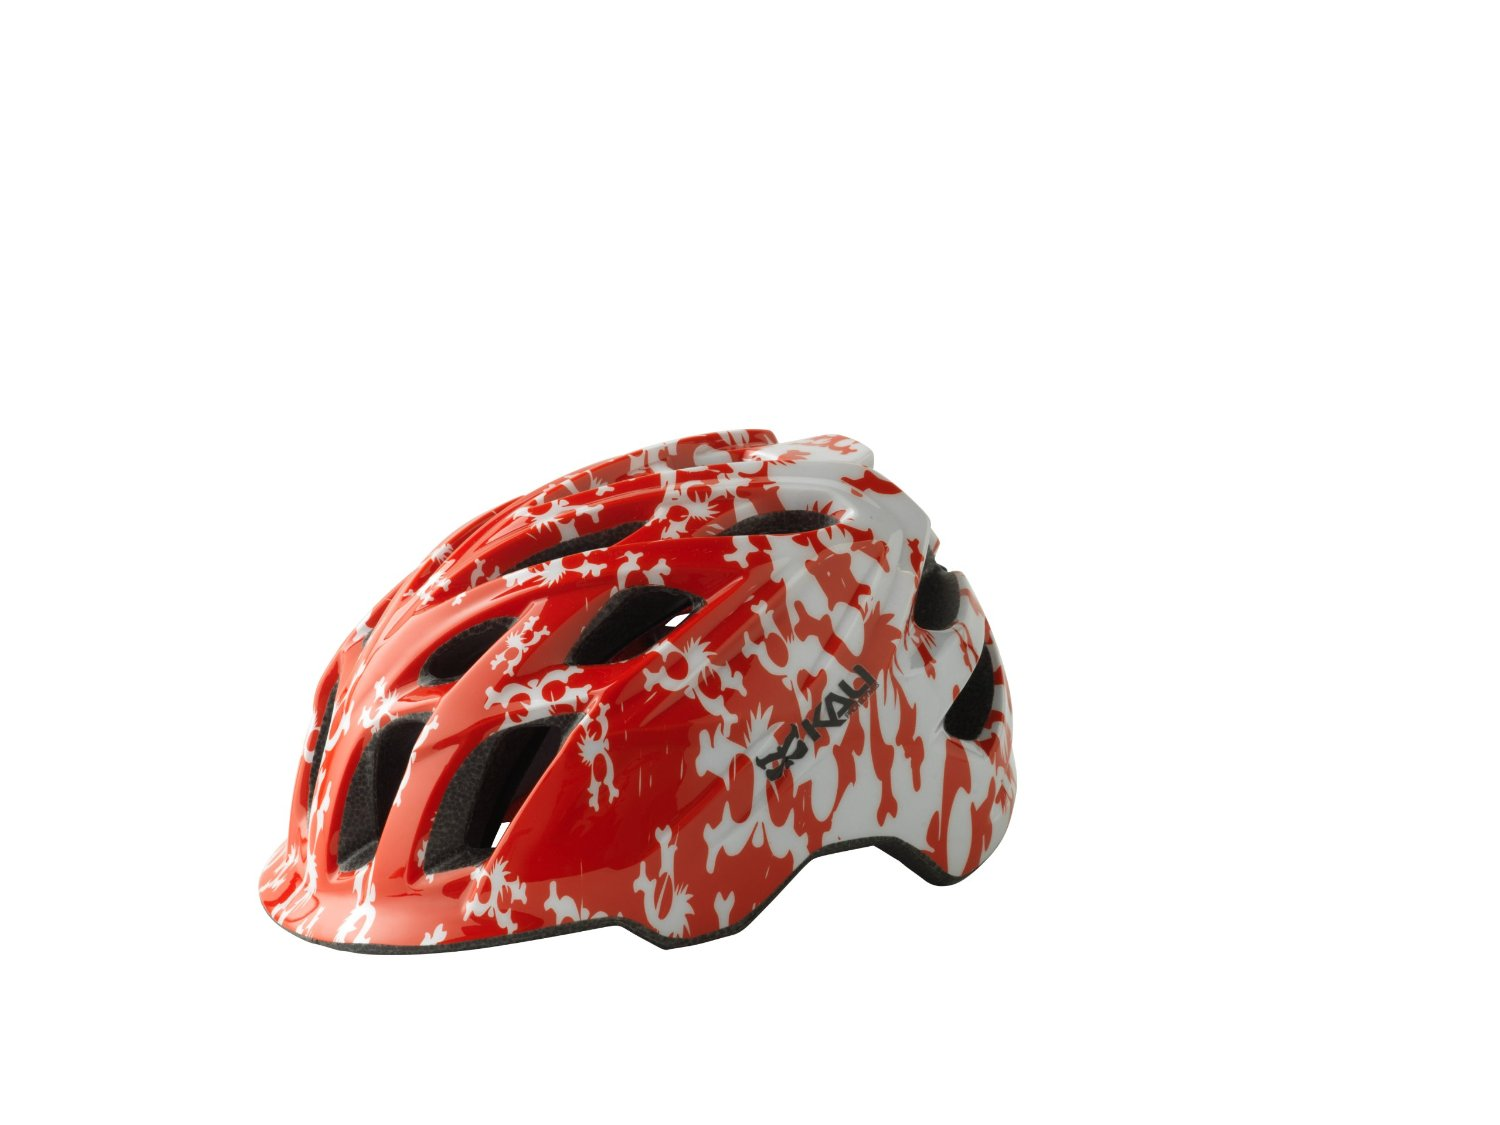 Kali Protectives Kids & Youth Bicycle Helmets